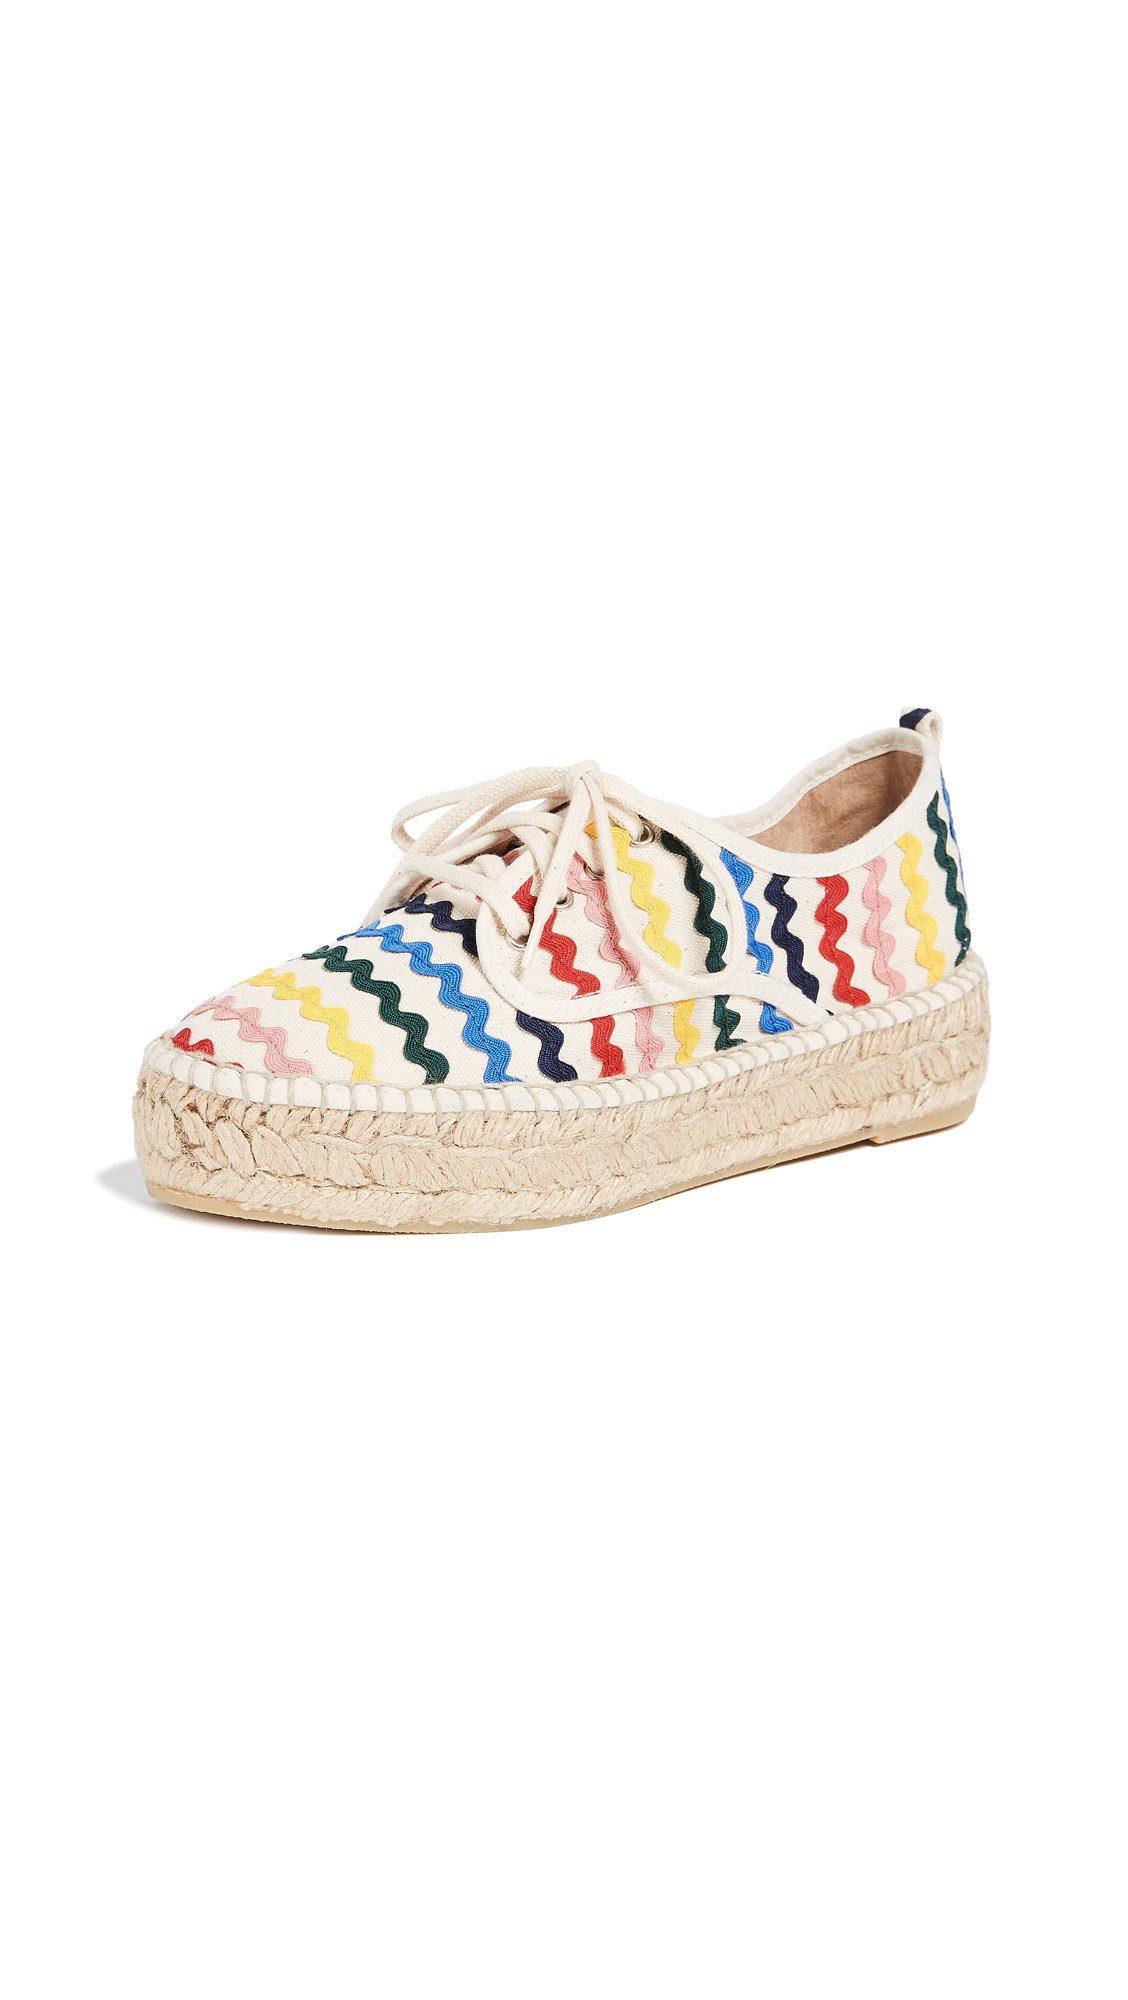 Photo of Loeffler Randall Alfie Espadrille Sneakers online shoes sales